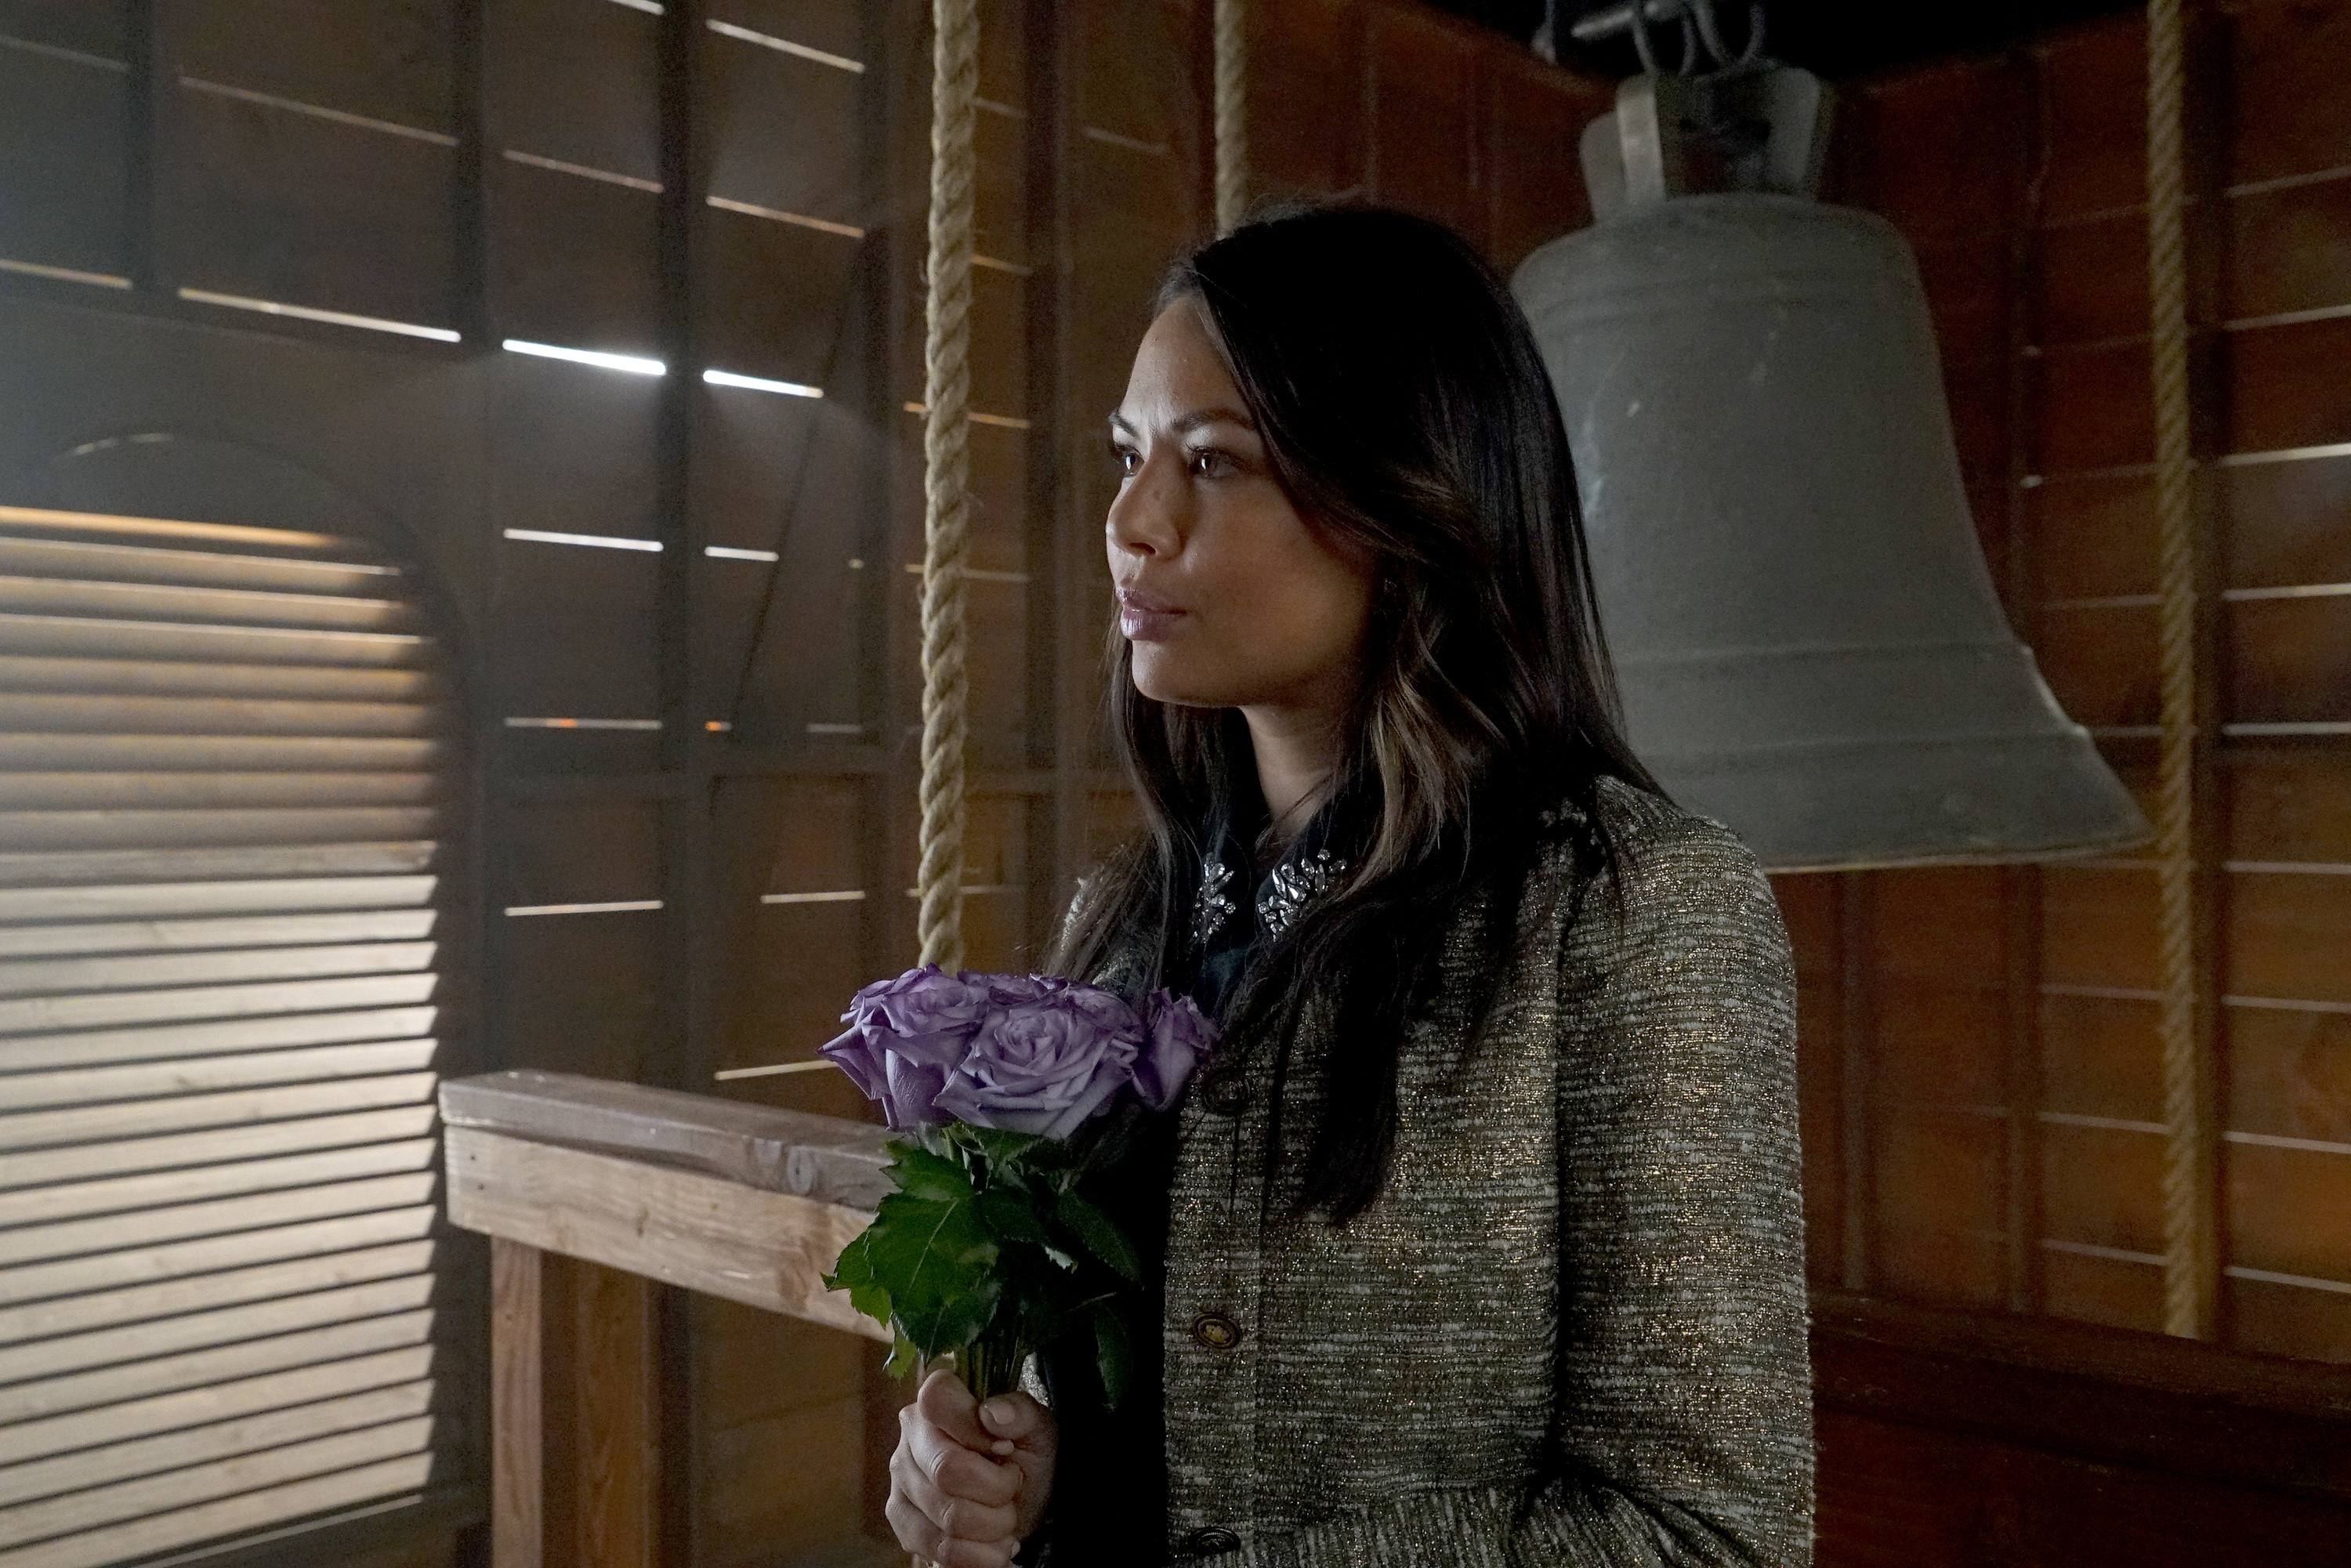 Pretty little liars quot recap 6 01 escape from the dollhouse page 7 - Pretty Little Liars Episode 719 Recap You Know What They Say About Hope Autostraddle